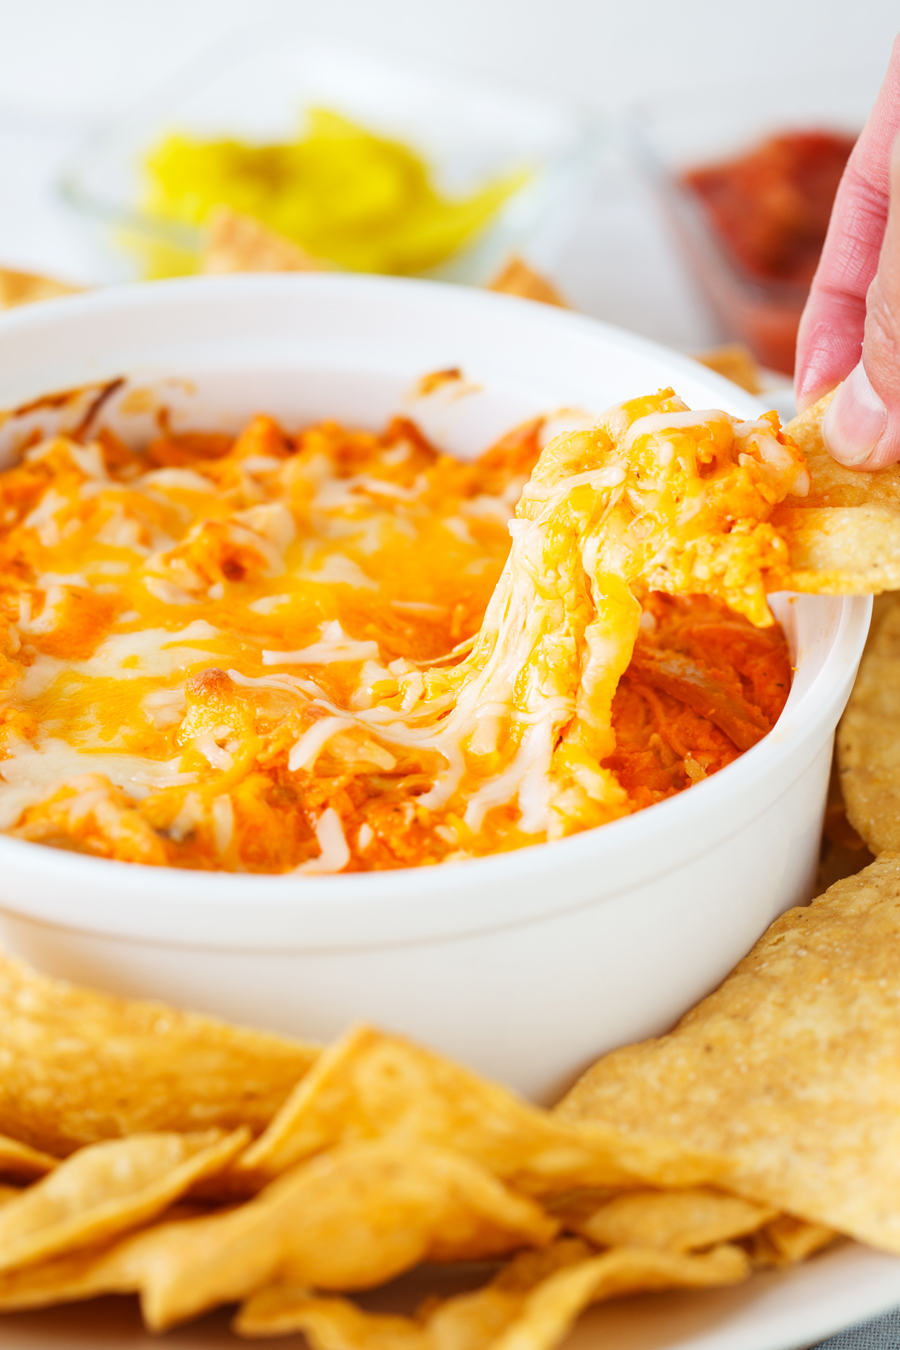 Hot Wing Chicken Dip -a delicious appetizer filled with shredded chicken, hot sauce, and cheese and baked to perfection. Serve with veggies or chips at your parties.